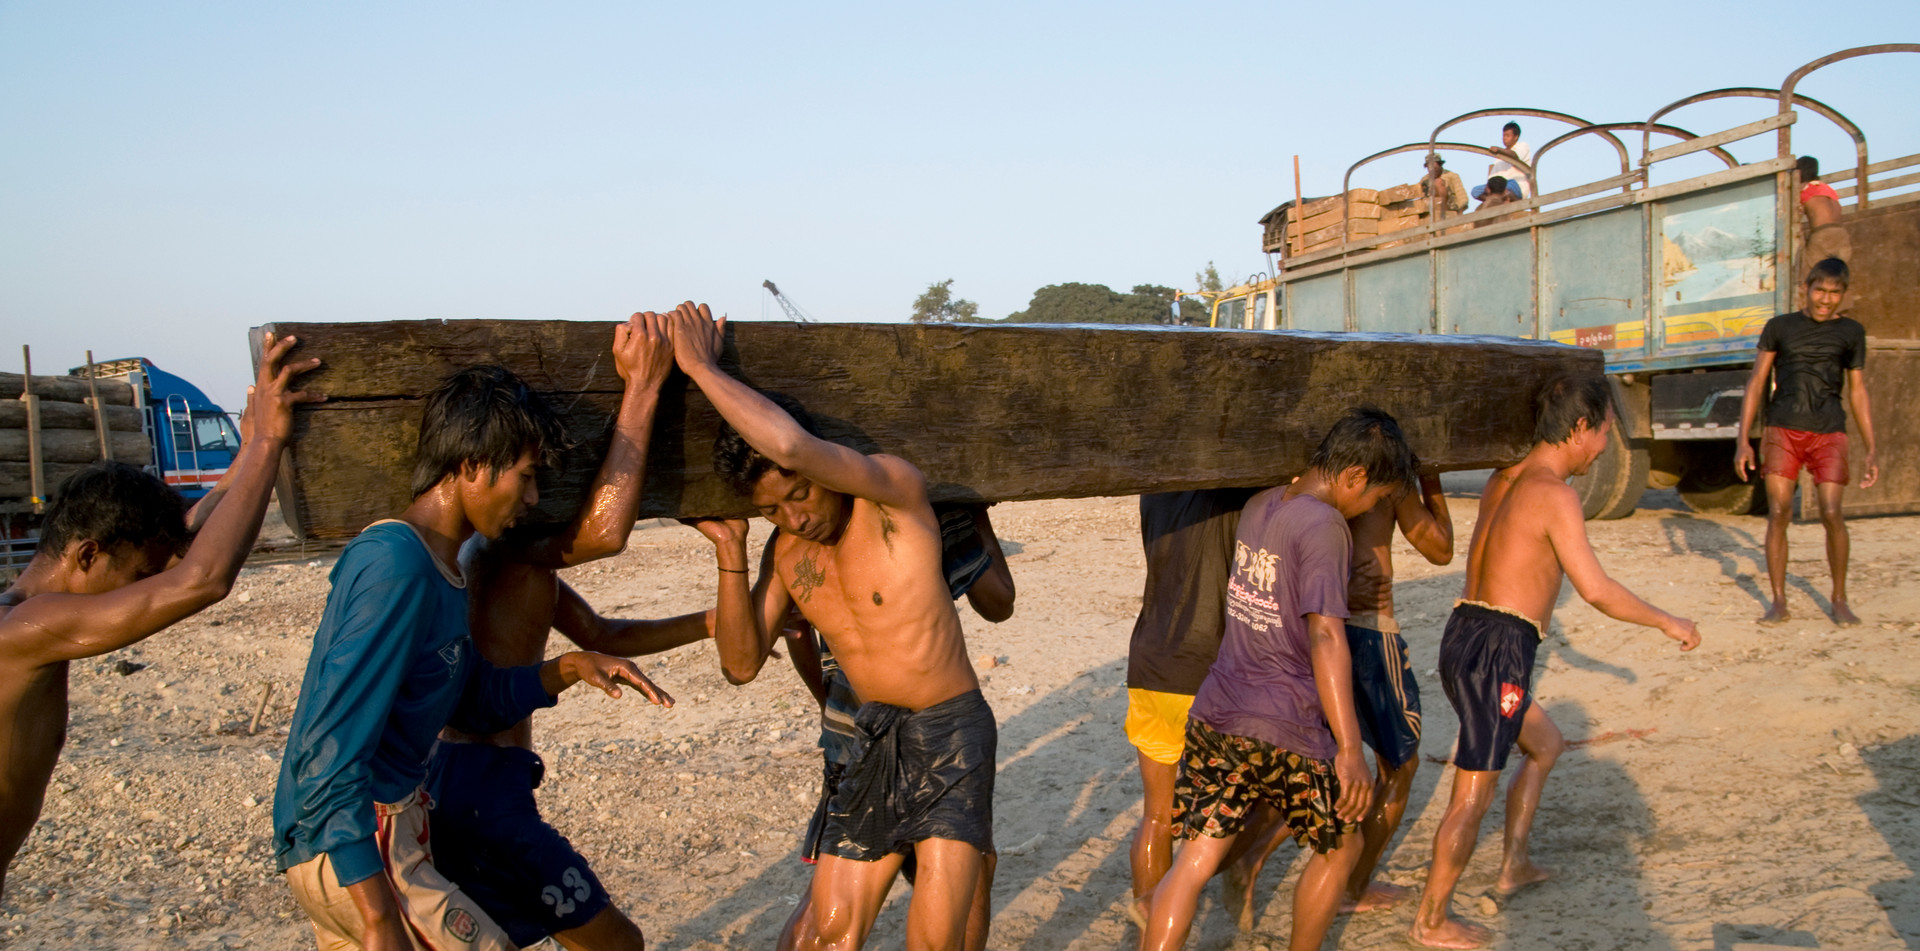 Workers lifting hardwoods near Mandalay, the region where George Orwell's 'Burmese Days' was set